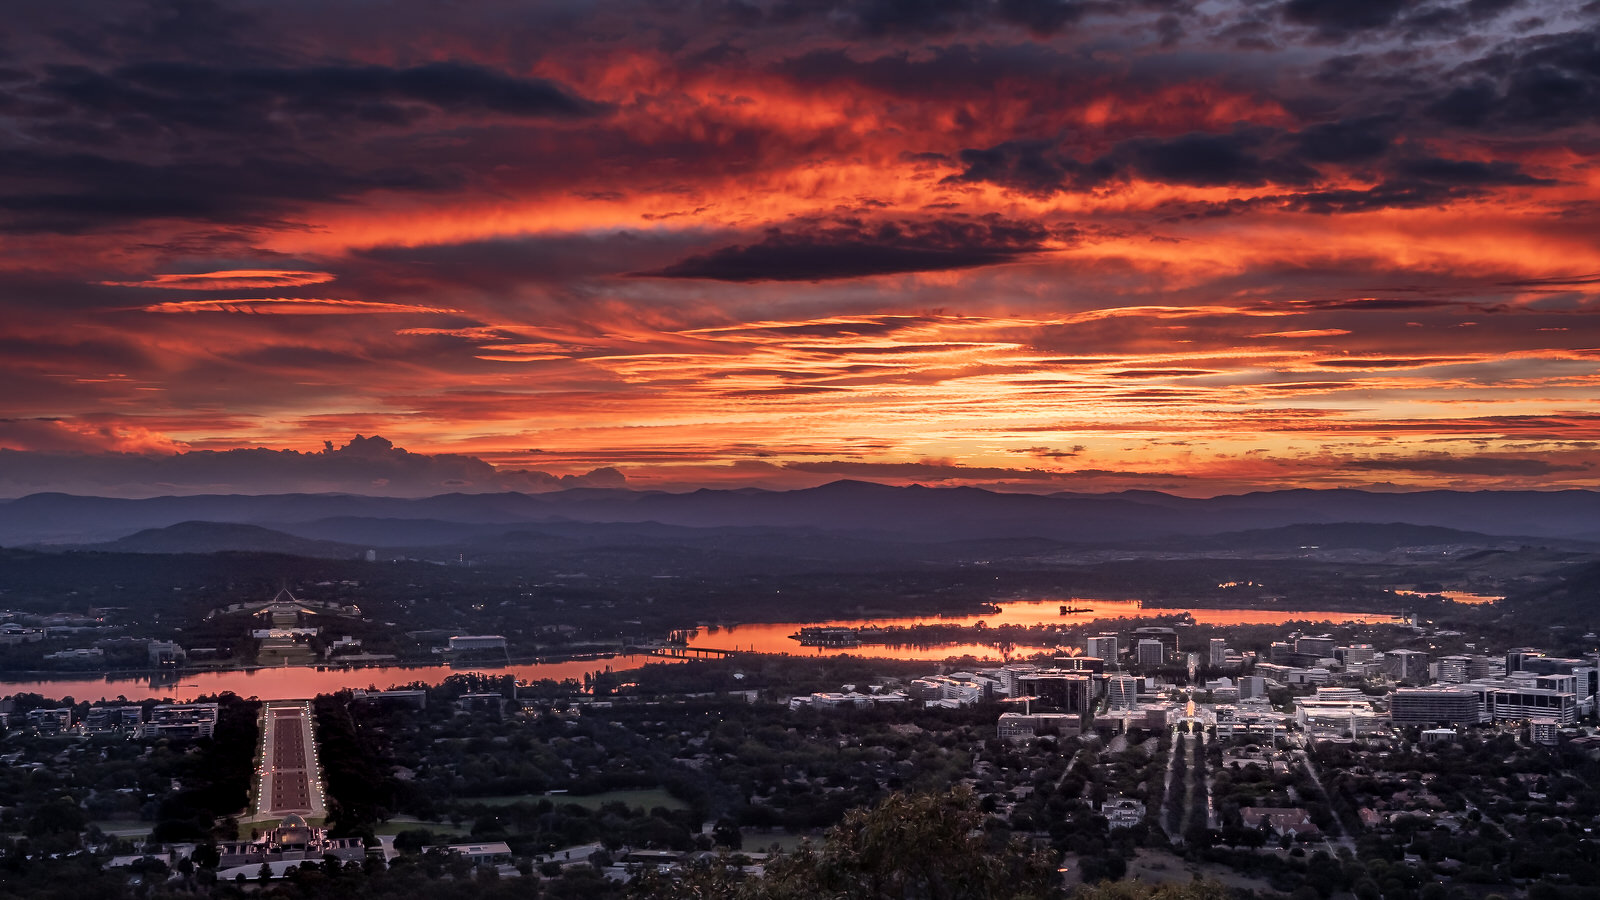 Fire in the Canberra Sky